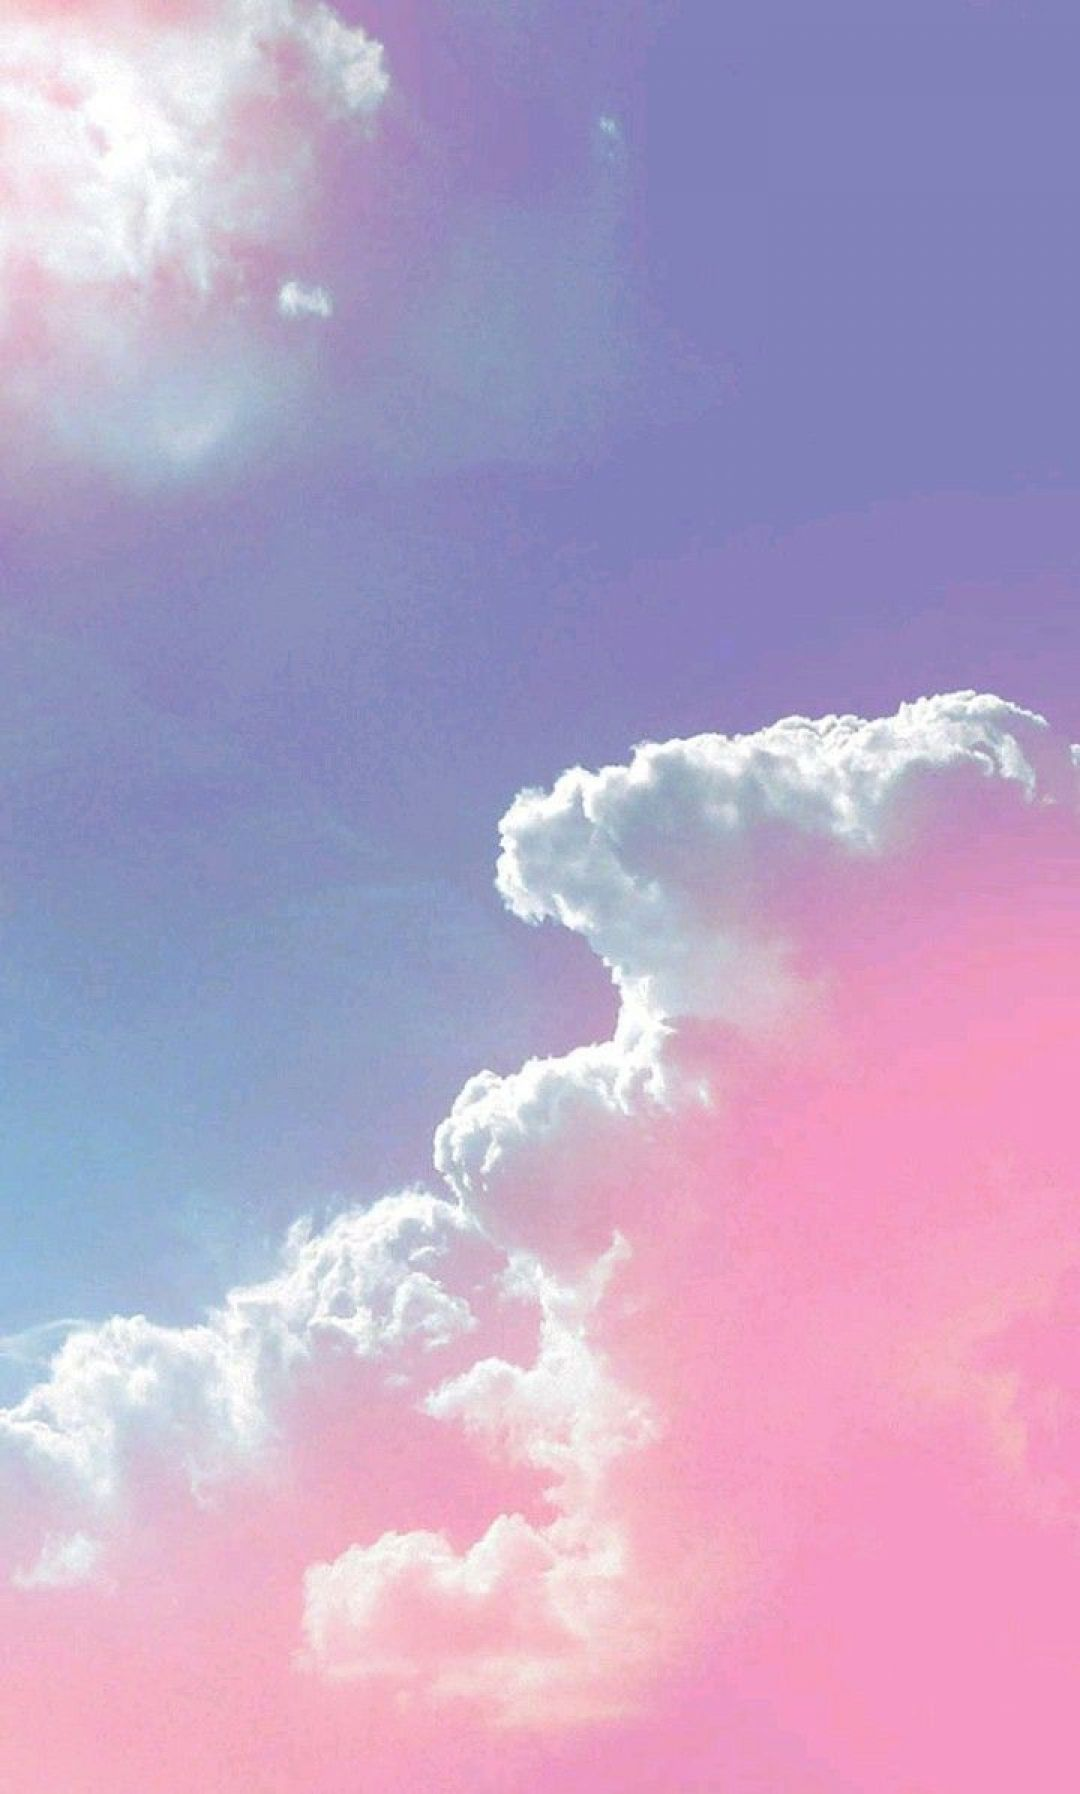 100+ Clouds Aesthetic Tumblr - Android, iPhone, Desktop ...